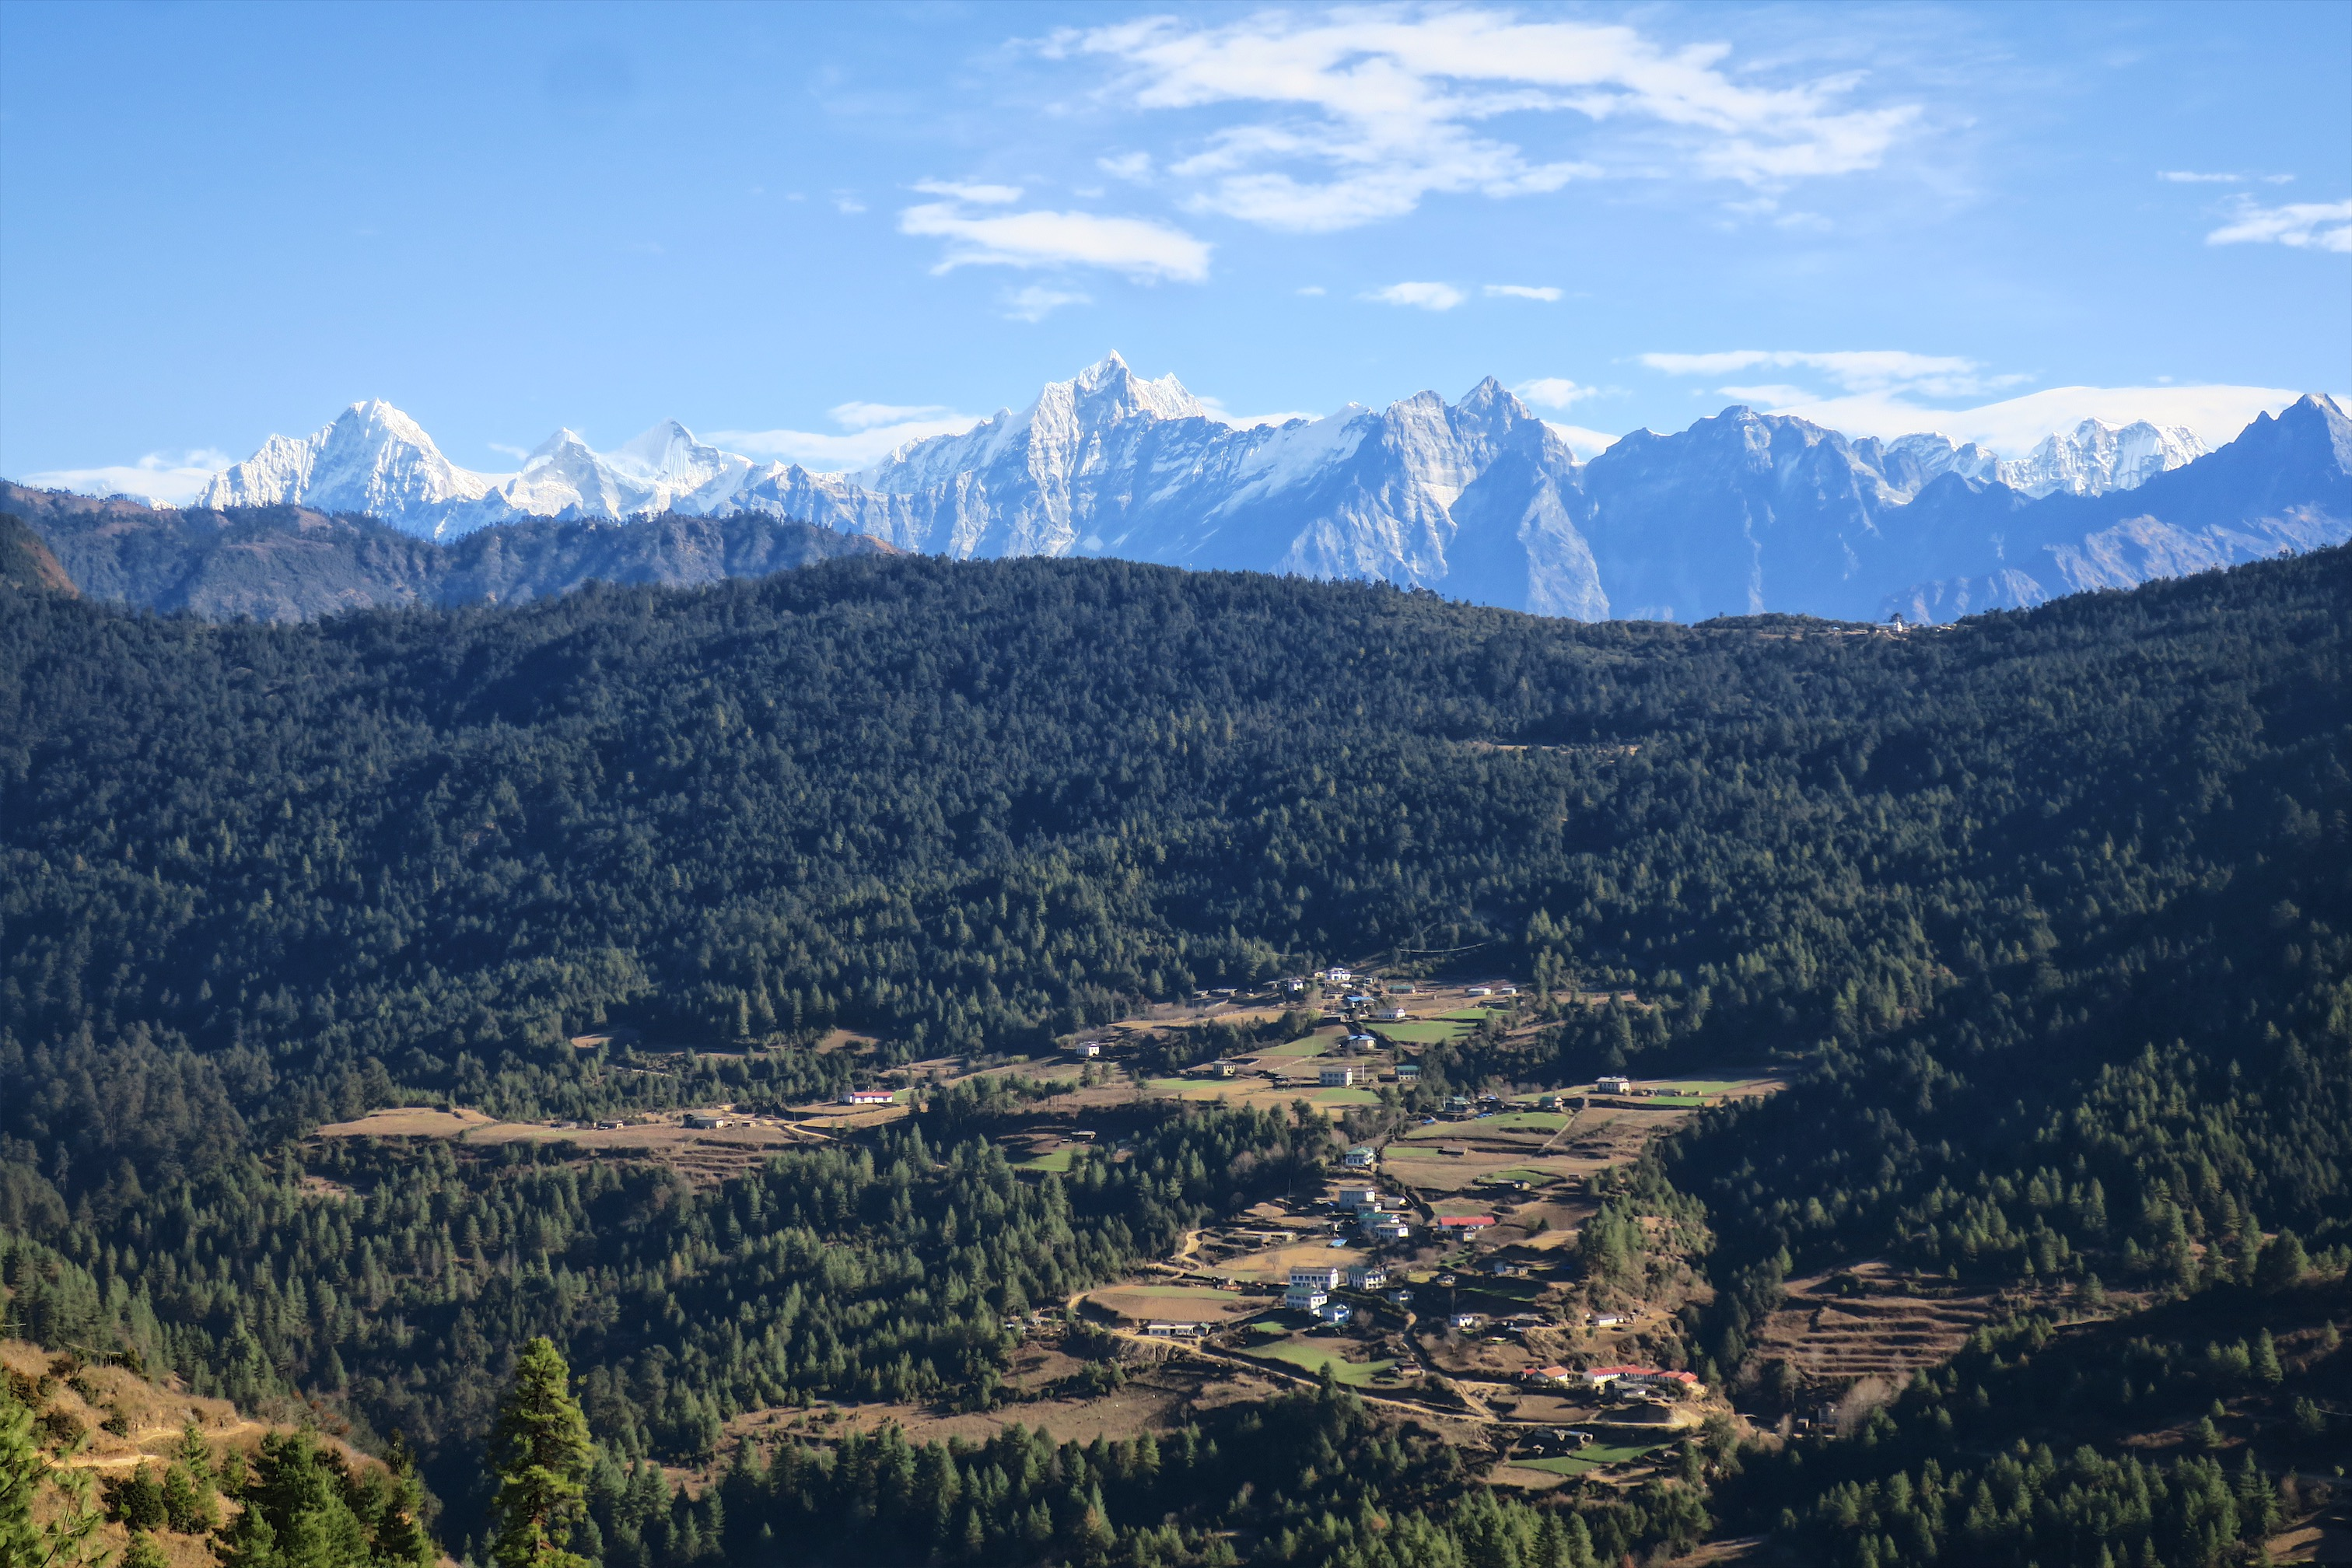 Just a picturesque mountain village surrounded by a Himalayan forest and a giant mountain range as a backdrop. No big deal.